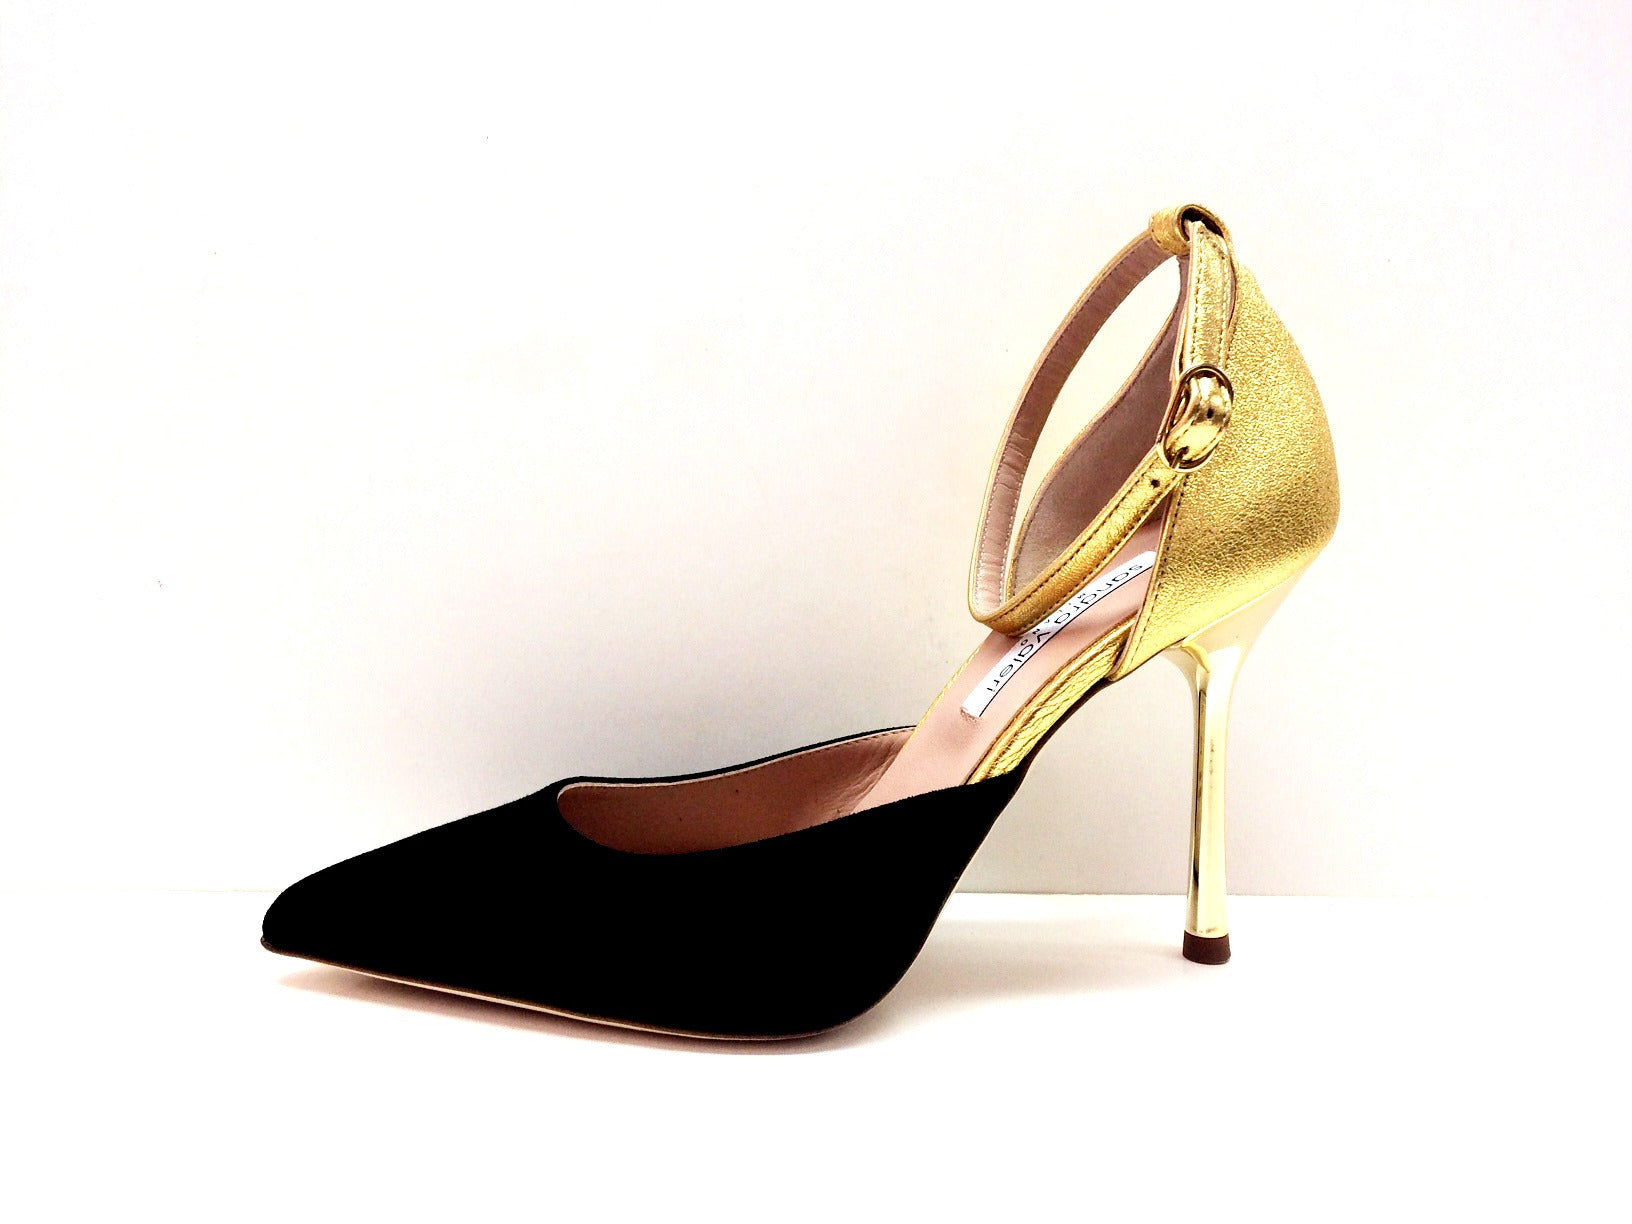 Designer Leather Heels Pump Gold Black